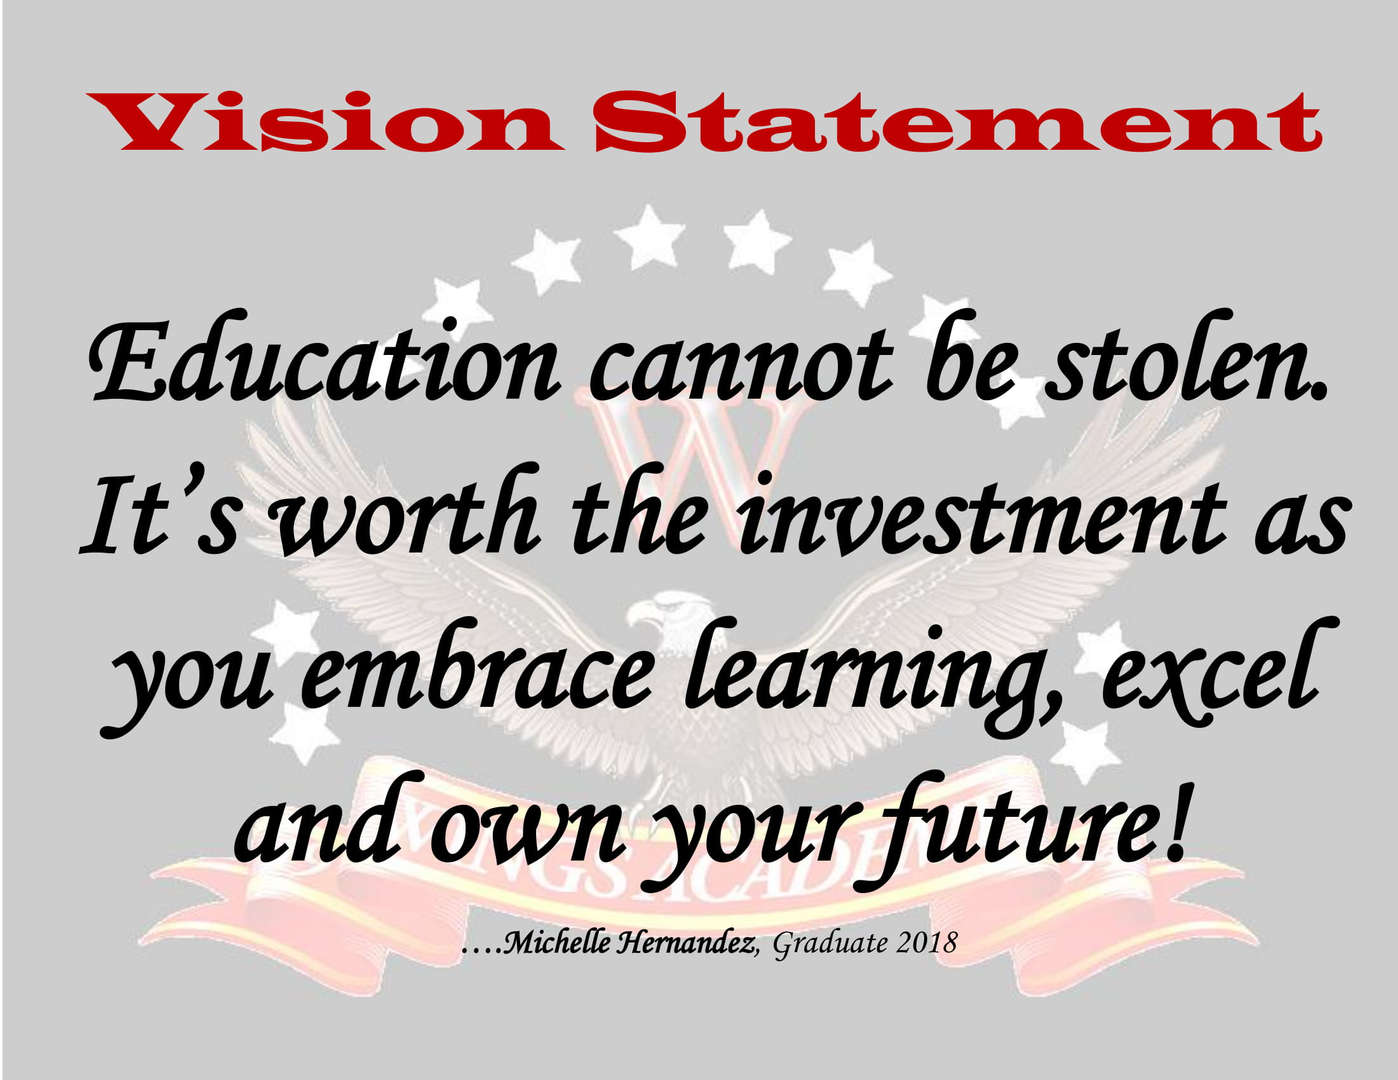 "WINGS Academy Vision Statement:  Education cannot be stolen.  It's worth the investment as you embrace learning, excel and own your future!""  This statement was written by Michelle Hernandez, a 2019 WINGS alum."